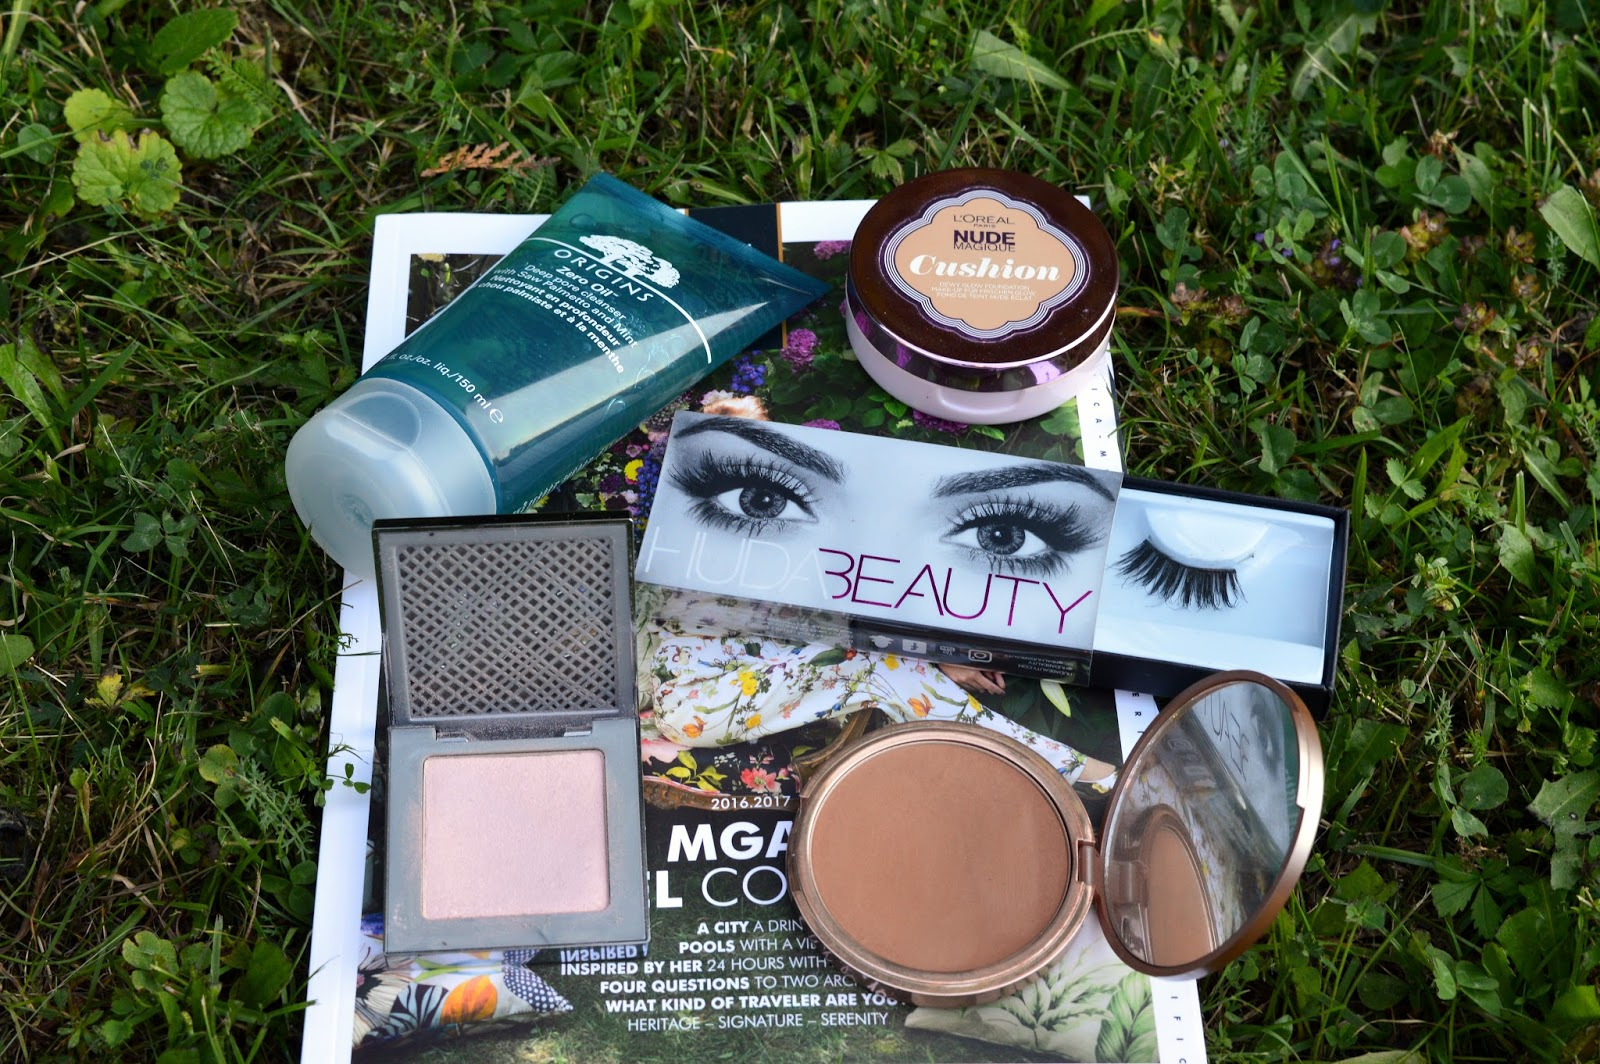 Urban Decay Aura, Urban Decay Bronzed, Origins Zero Oil, Huda Beauty, L'Oreal Paris Nude Magique Cushion